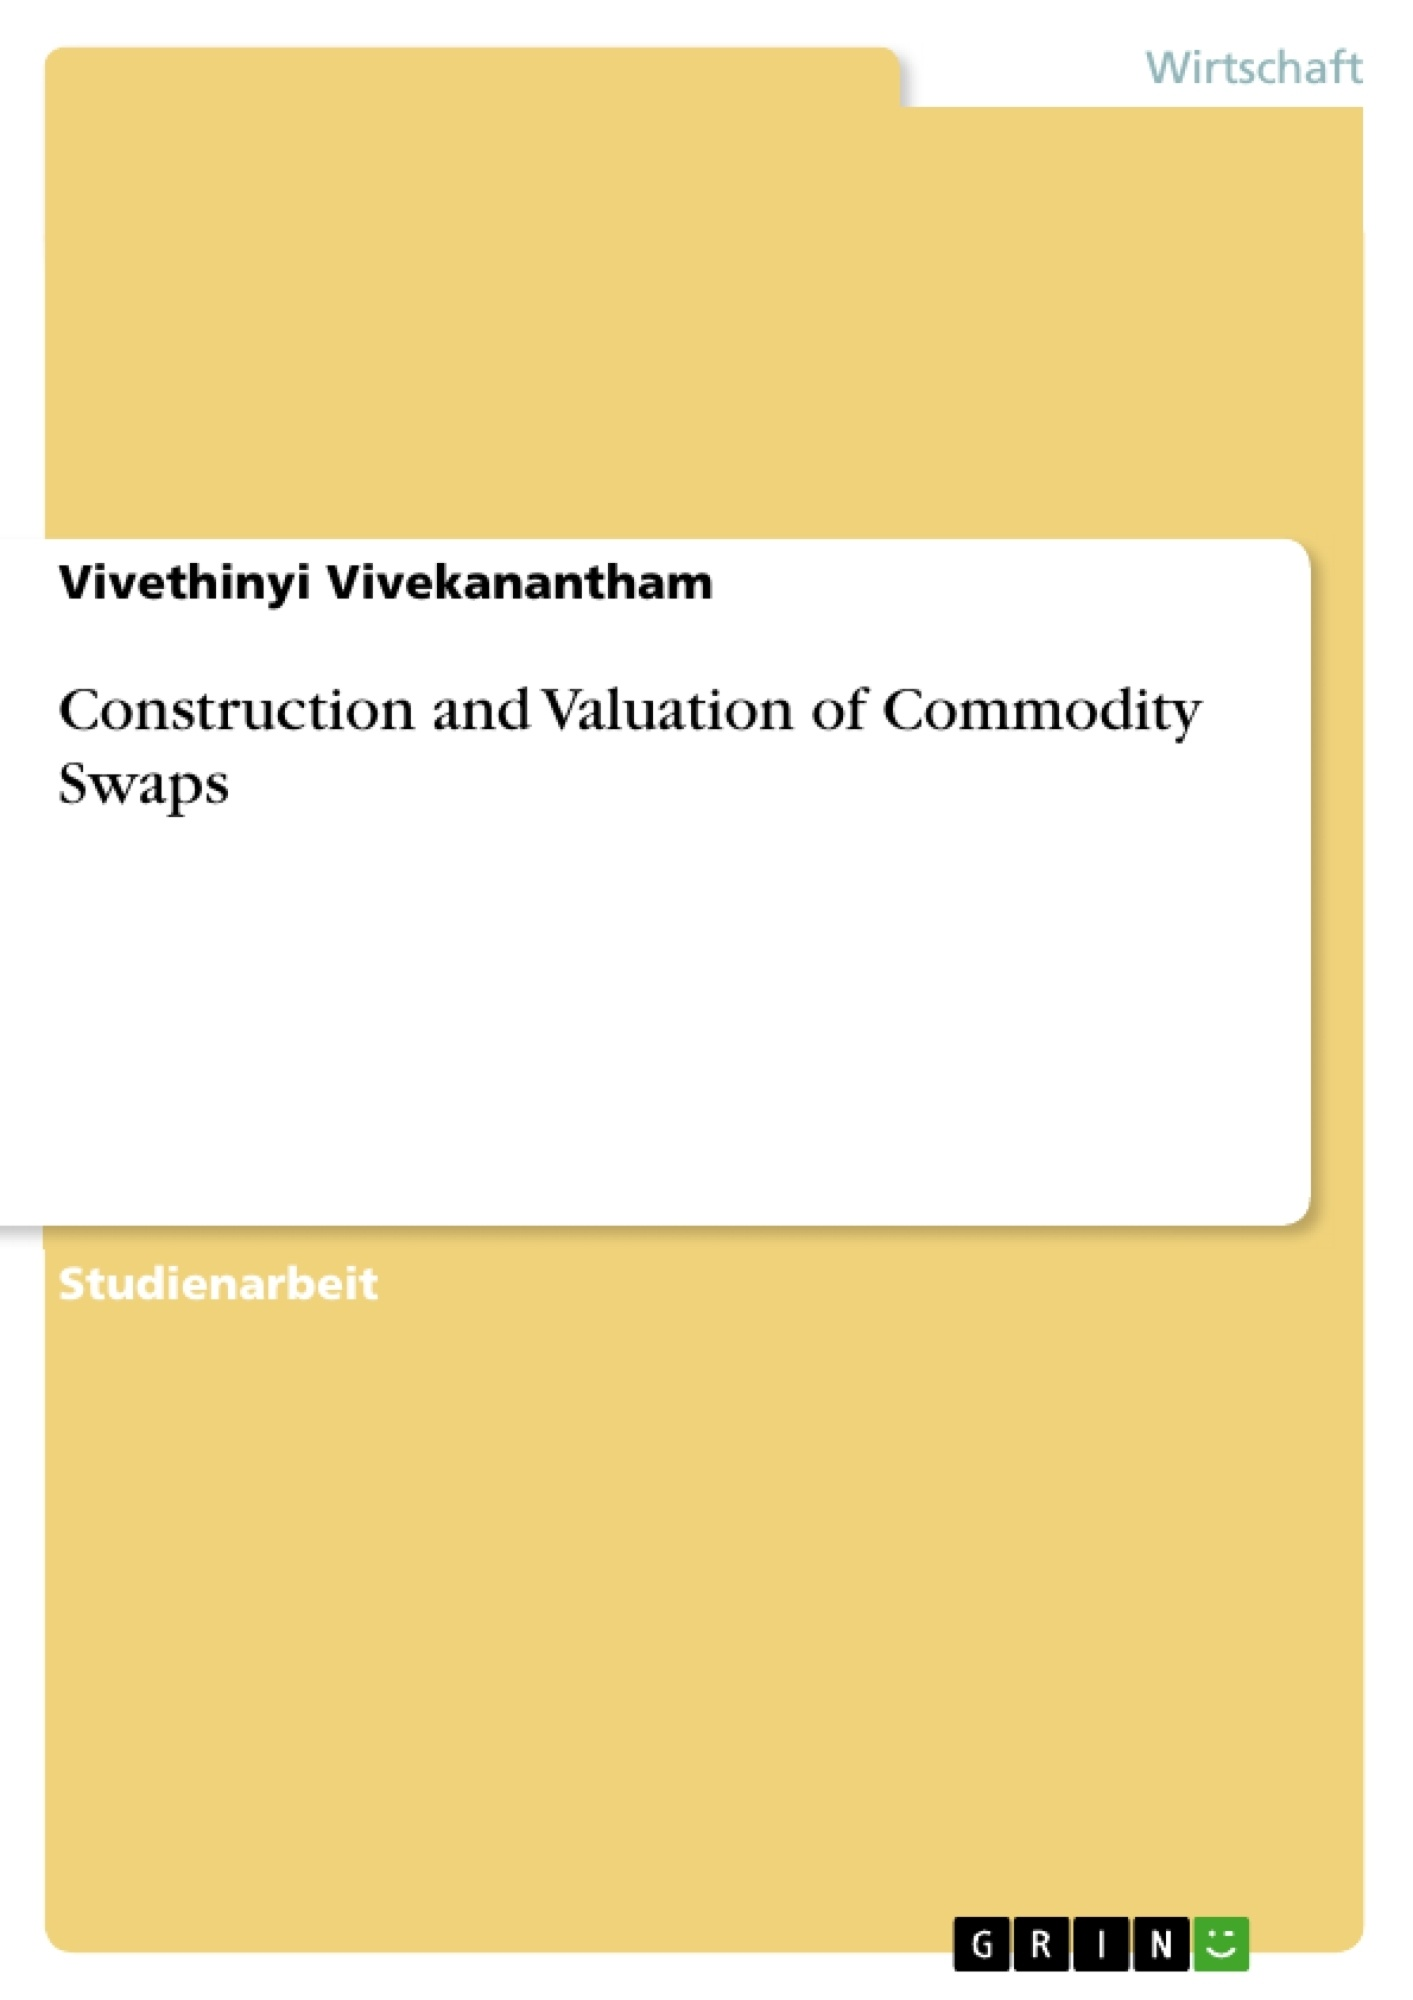 Titel: Construction and Valuation of Commodity Swaps